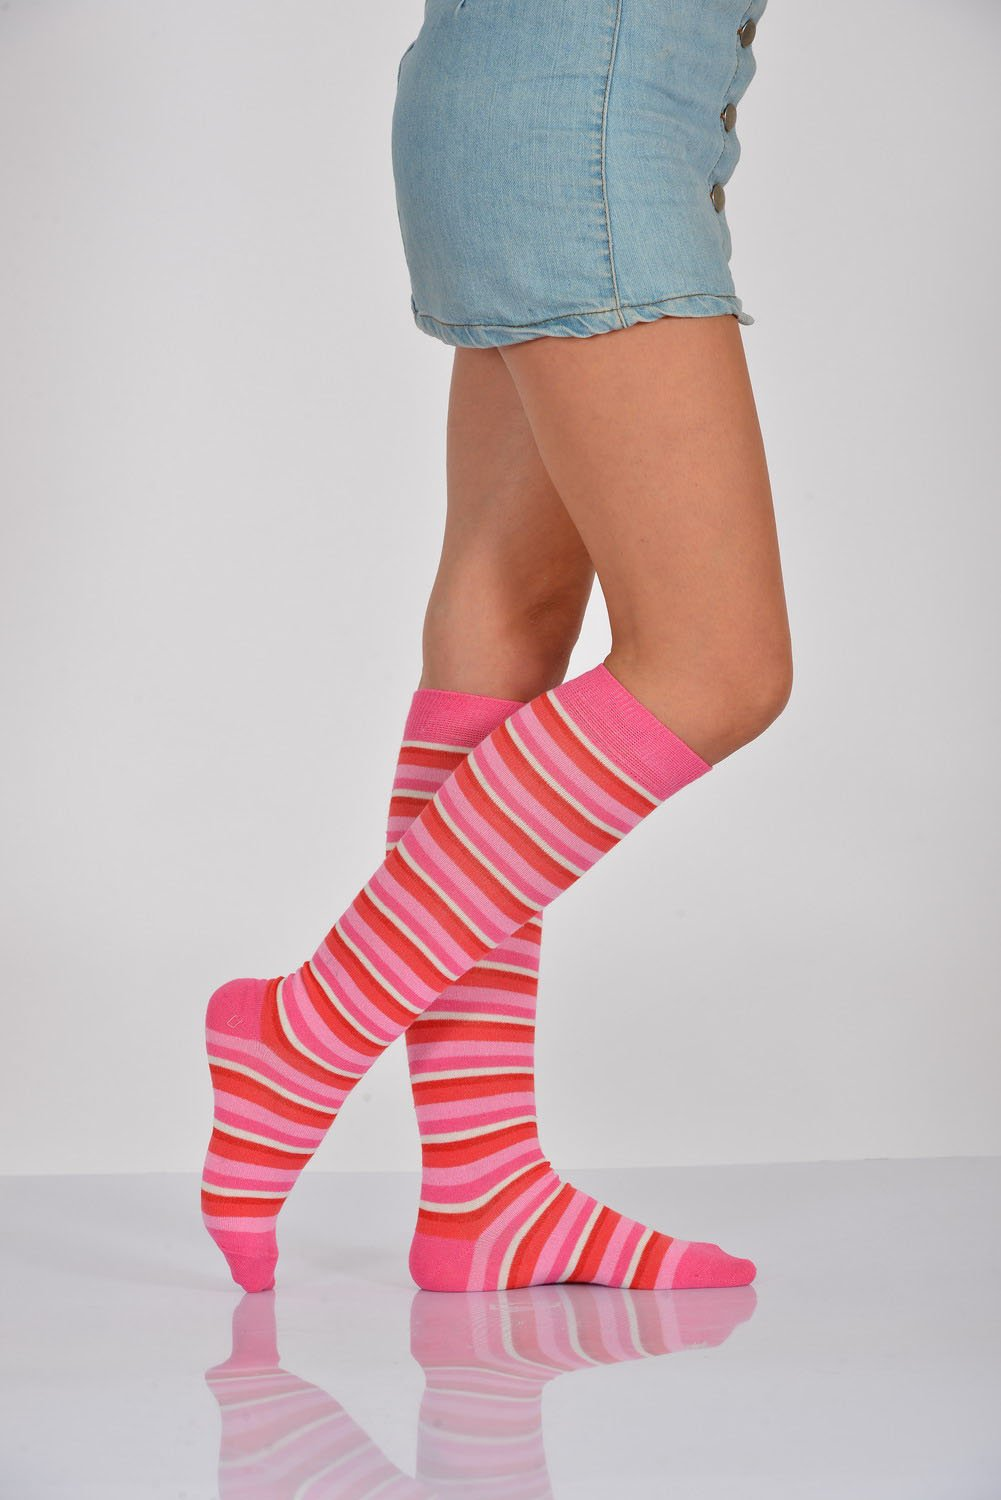 Women's Striped Long Pink Socks- 3 Pairs